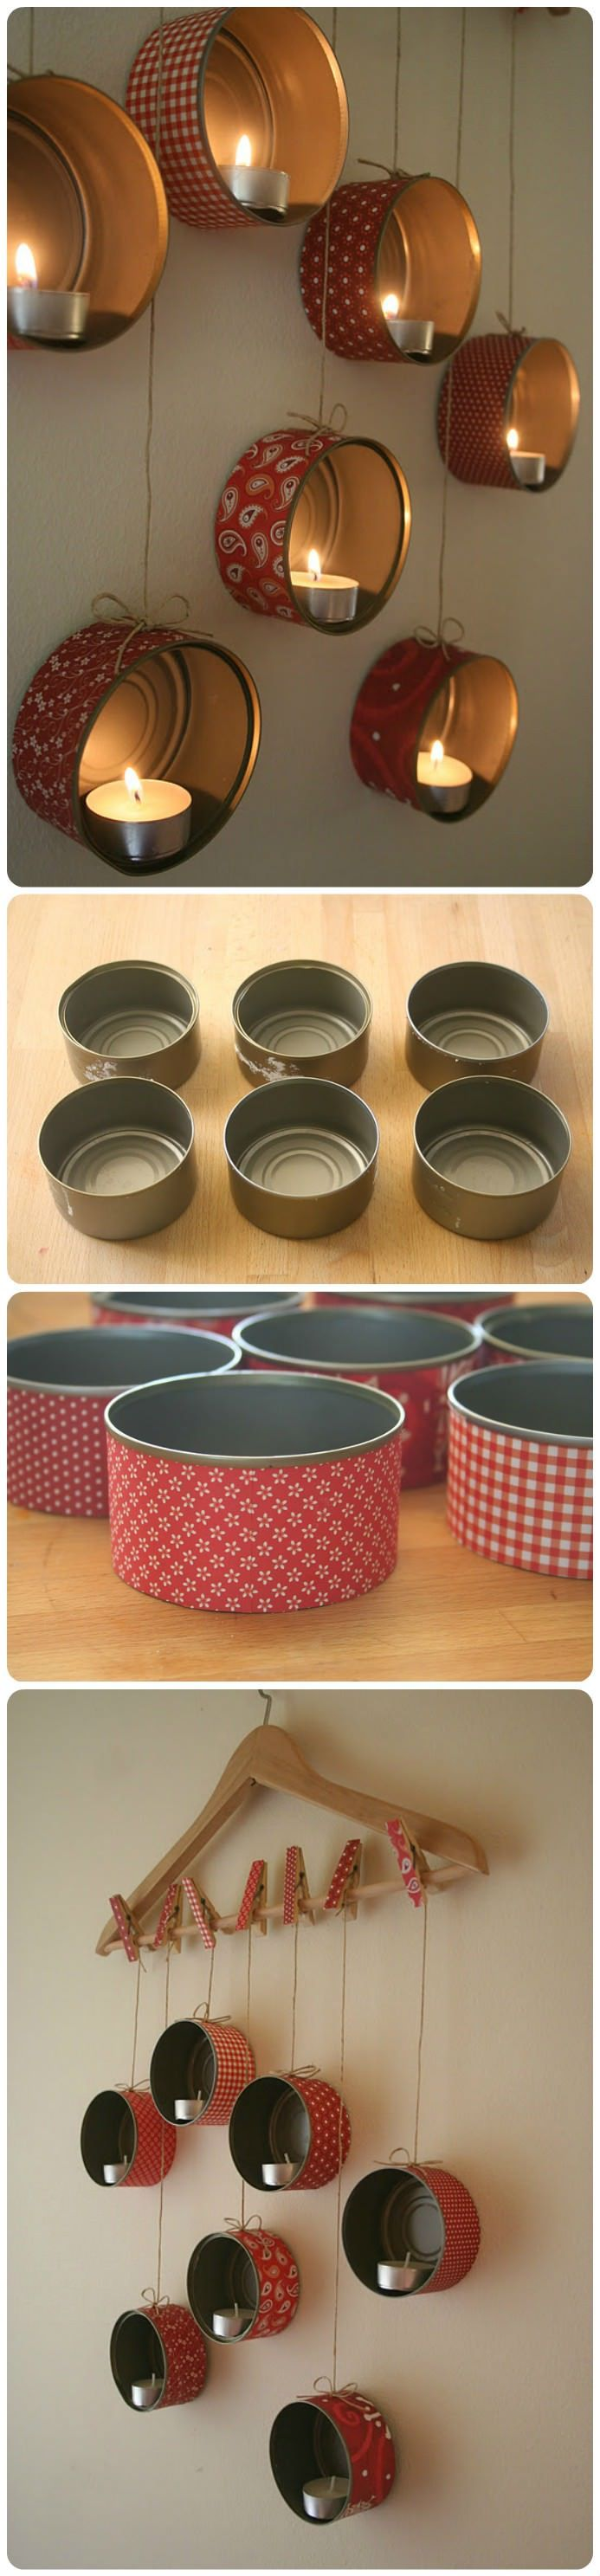 Look at this beautiful idea repurposing old tin cans into simple candle holders!